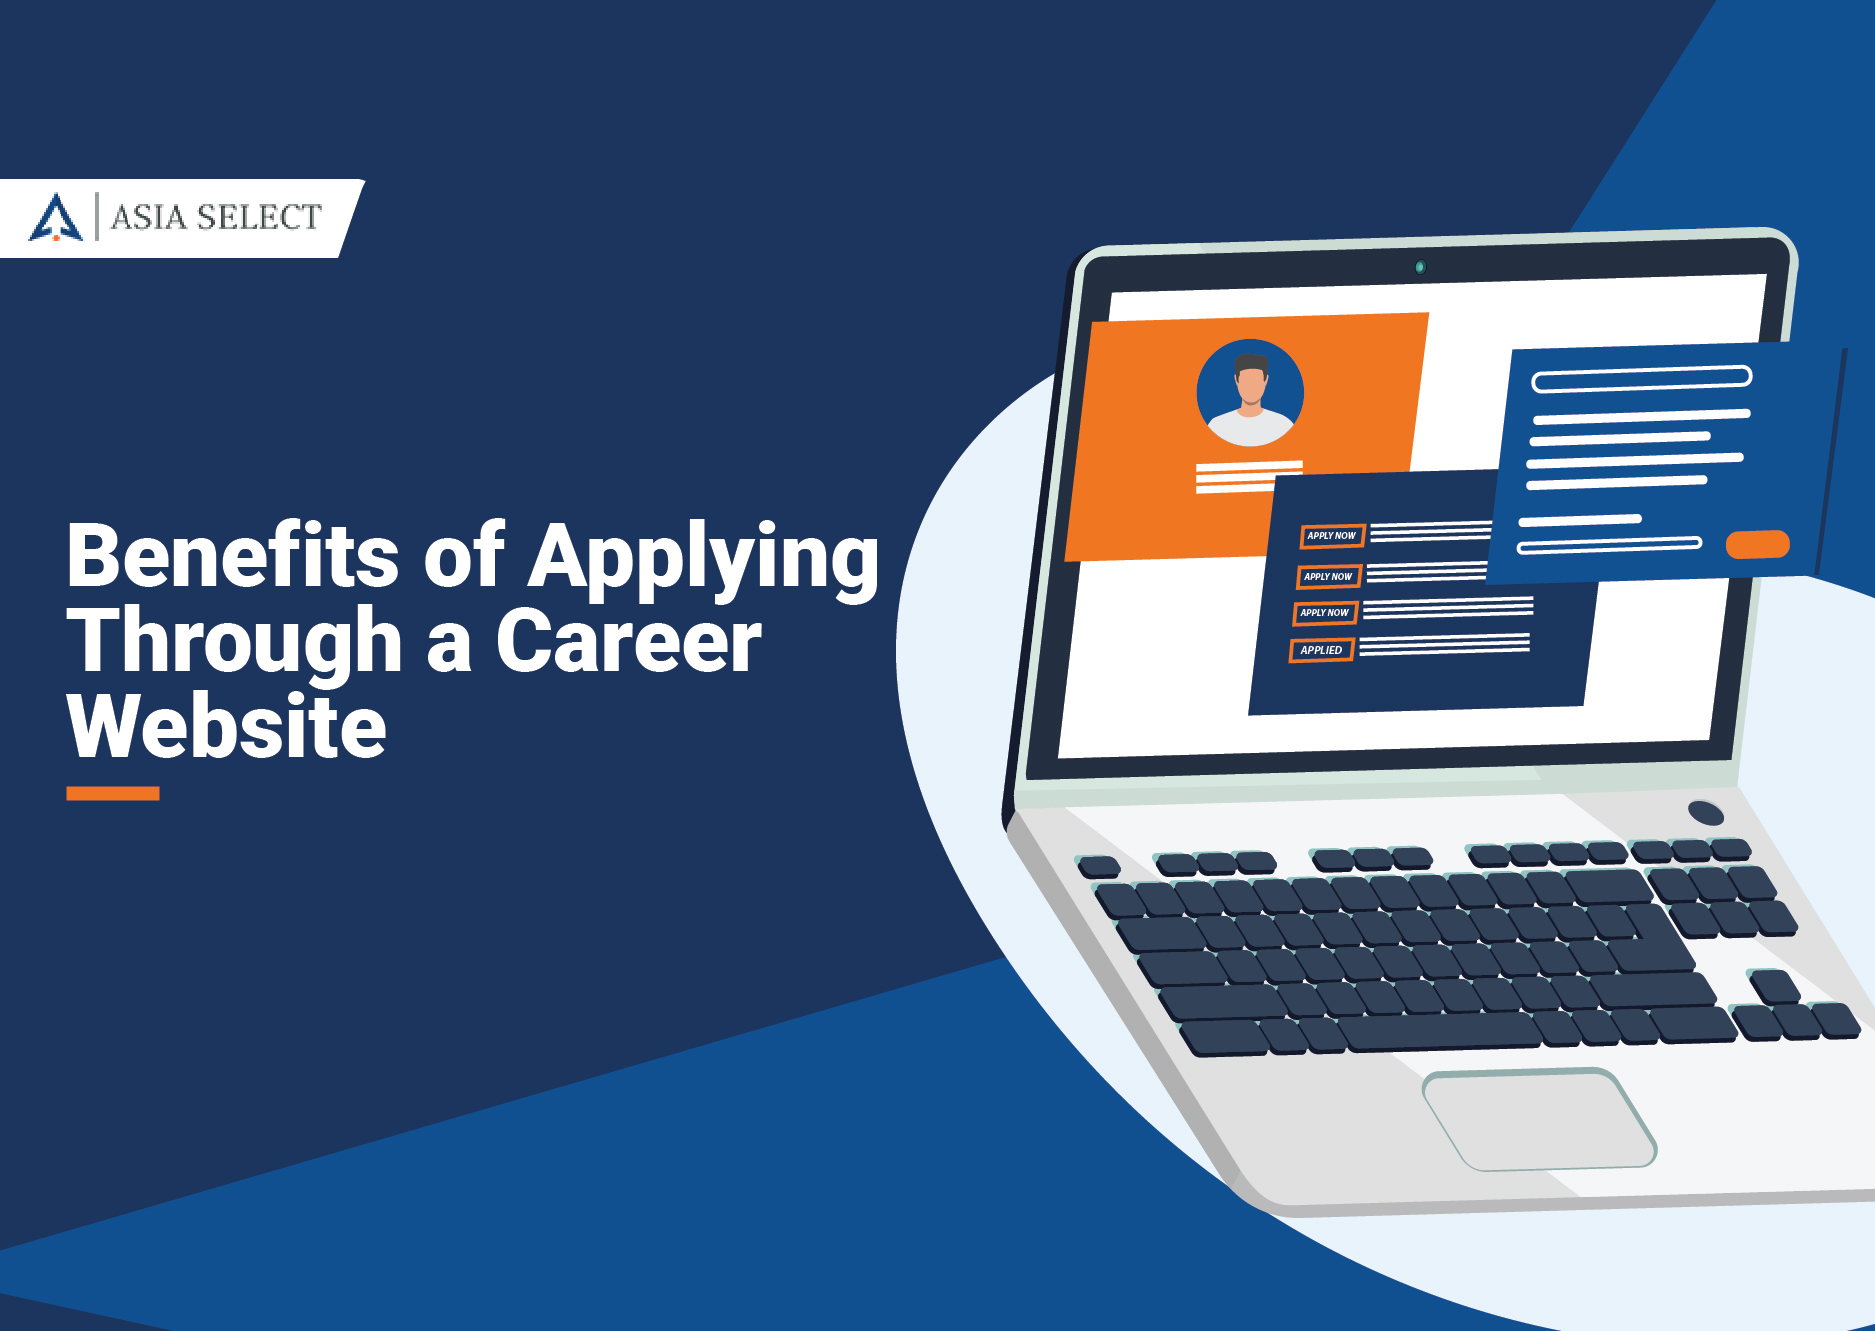 Untold benefits of applying through a career website